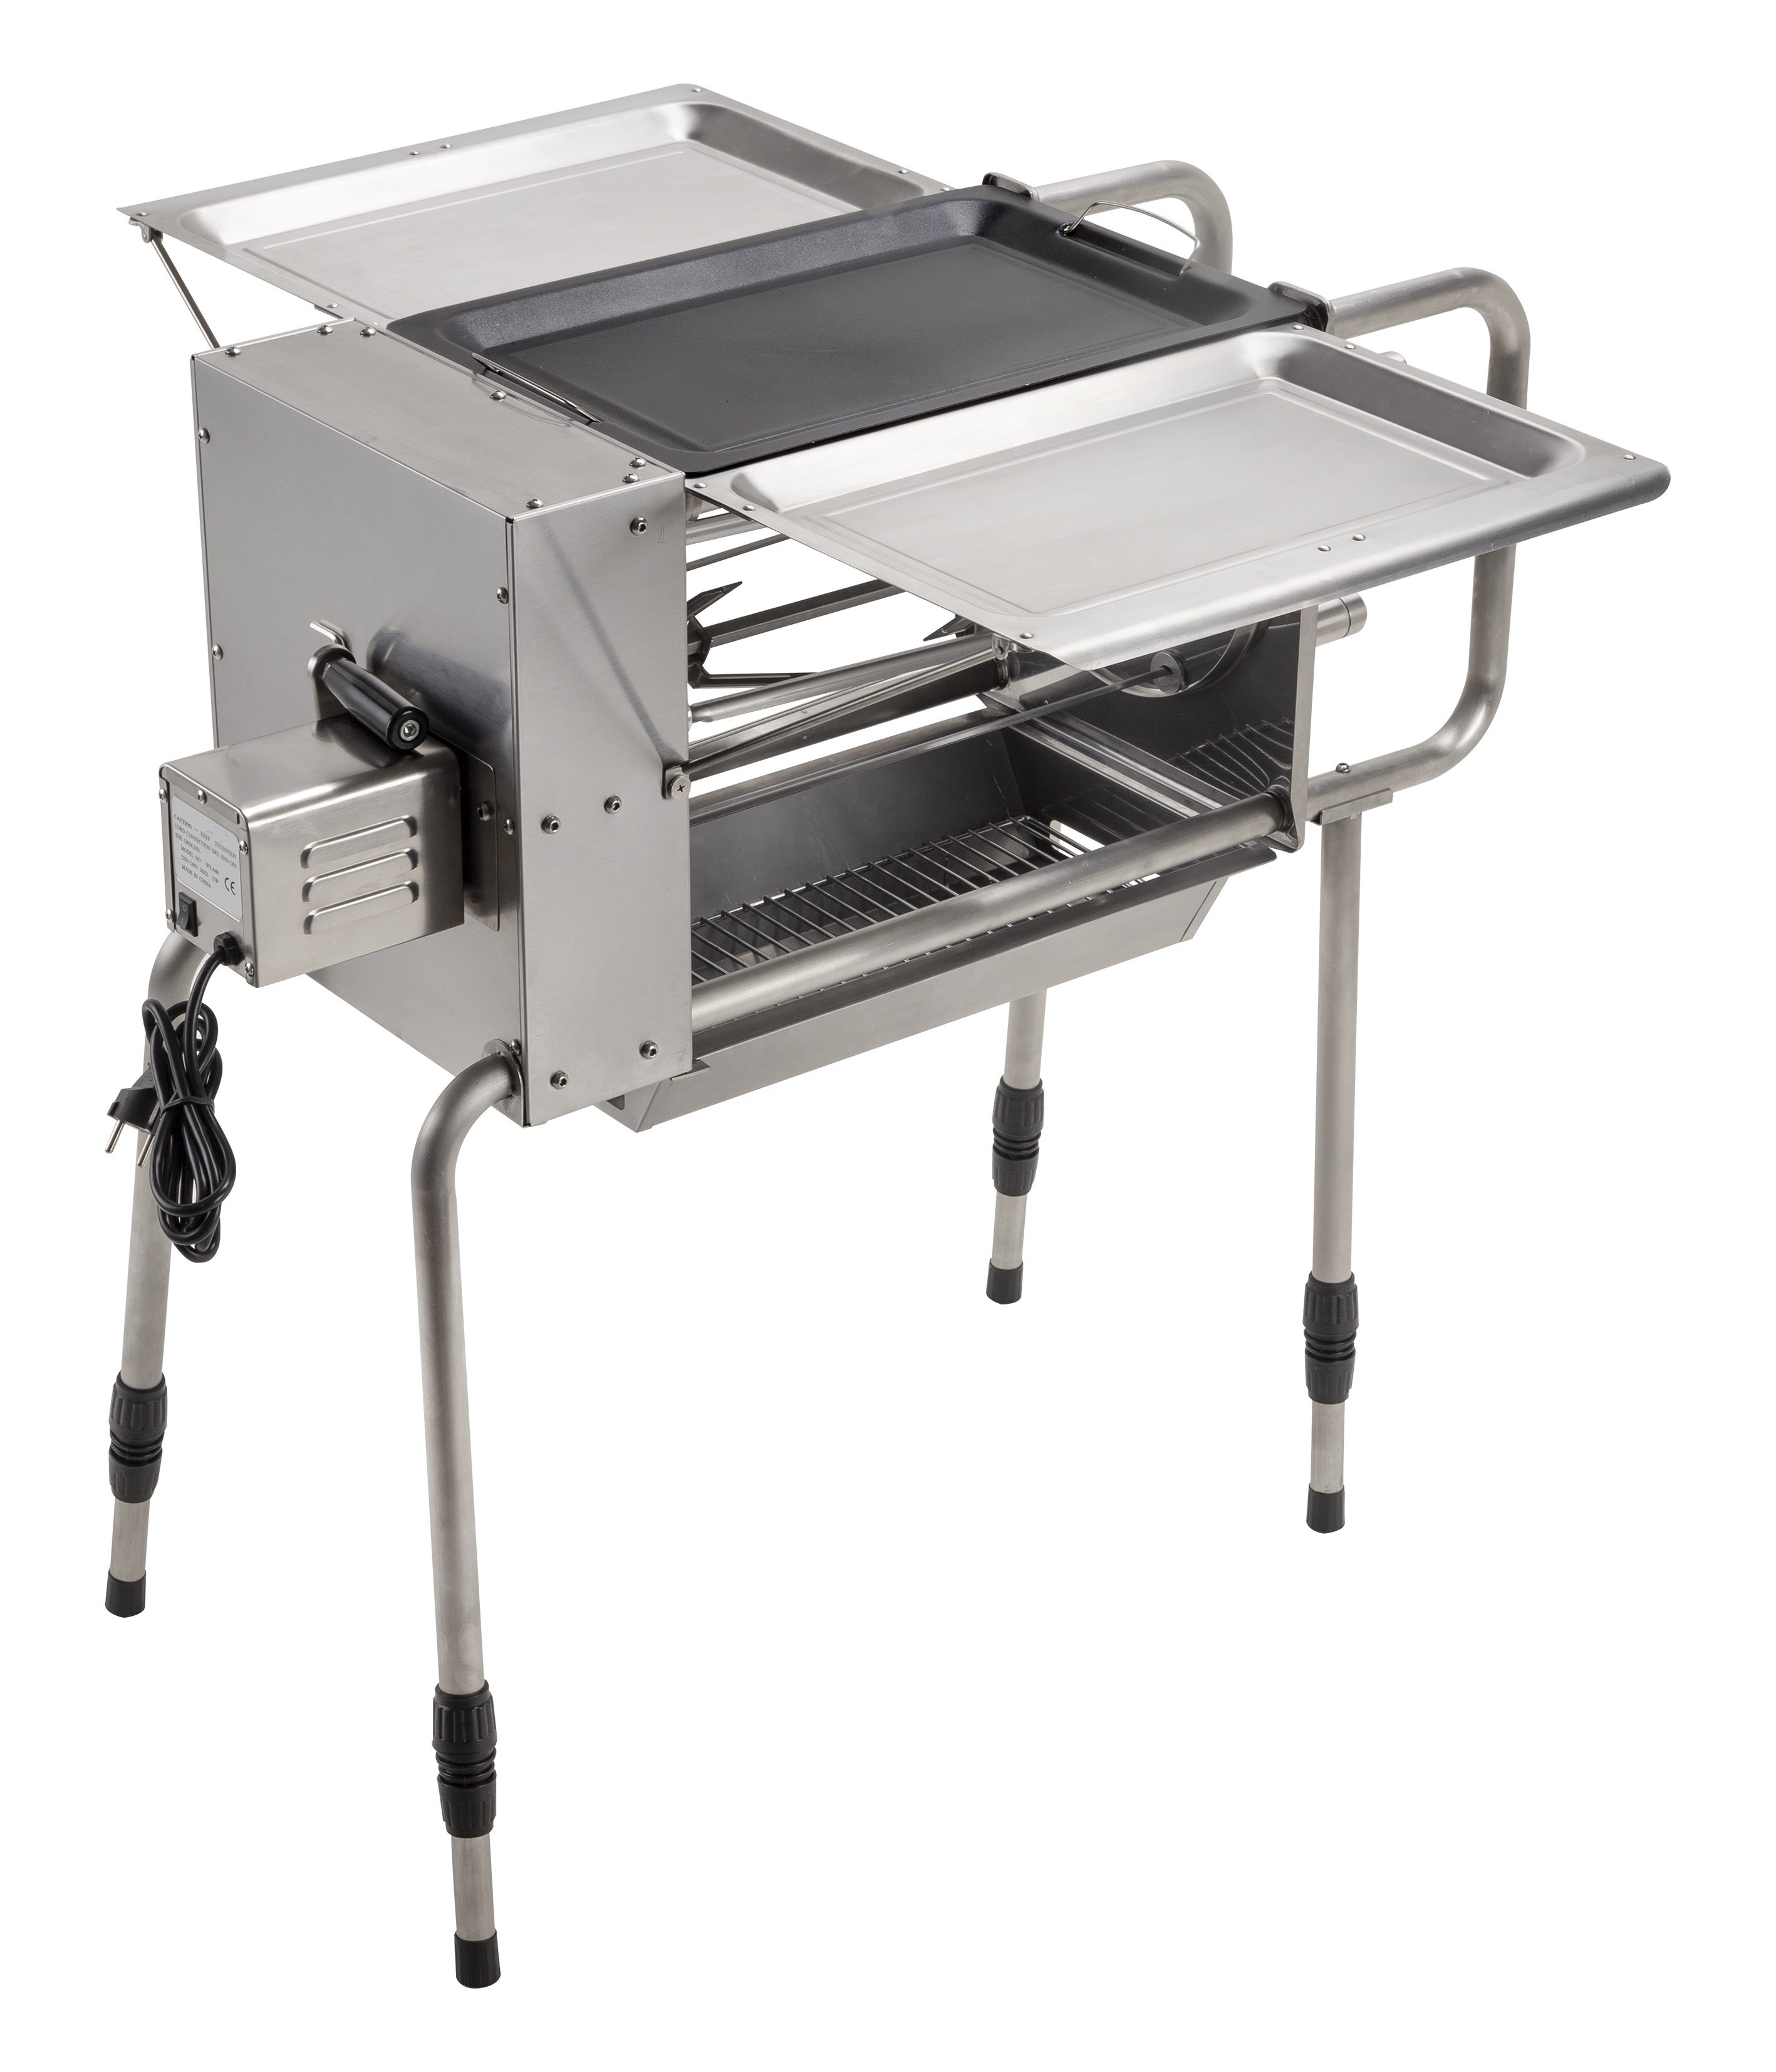 Multifunctionele automatische rotisserie kit houtskool barbecue spit Braziliaanse roterende grill motor outdoor camping achtertuin